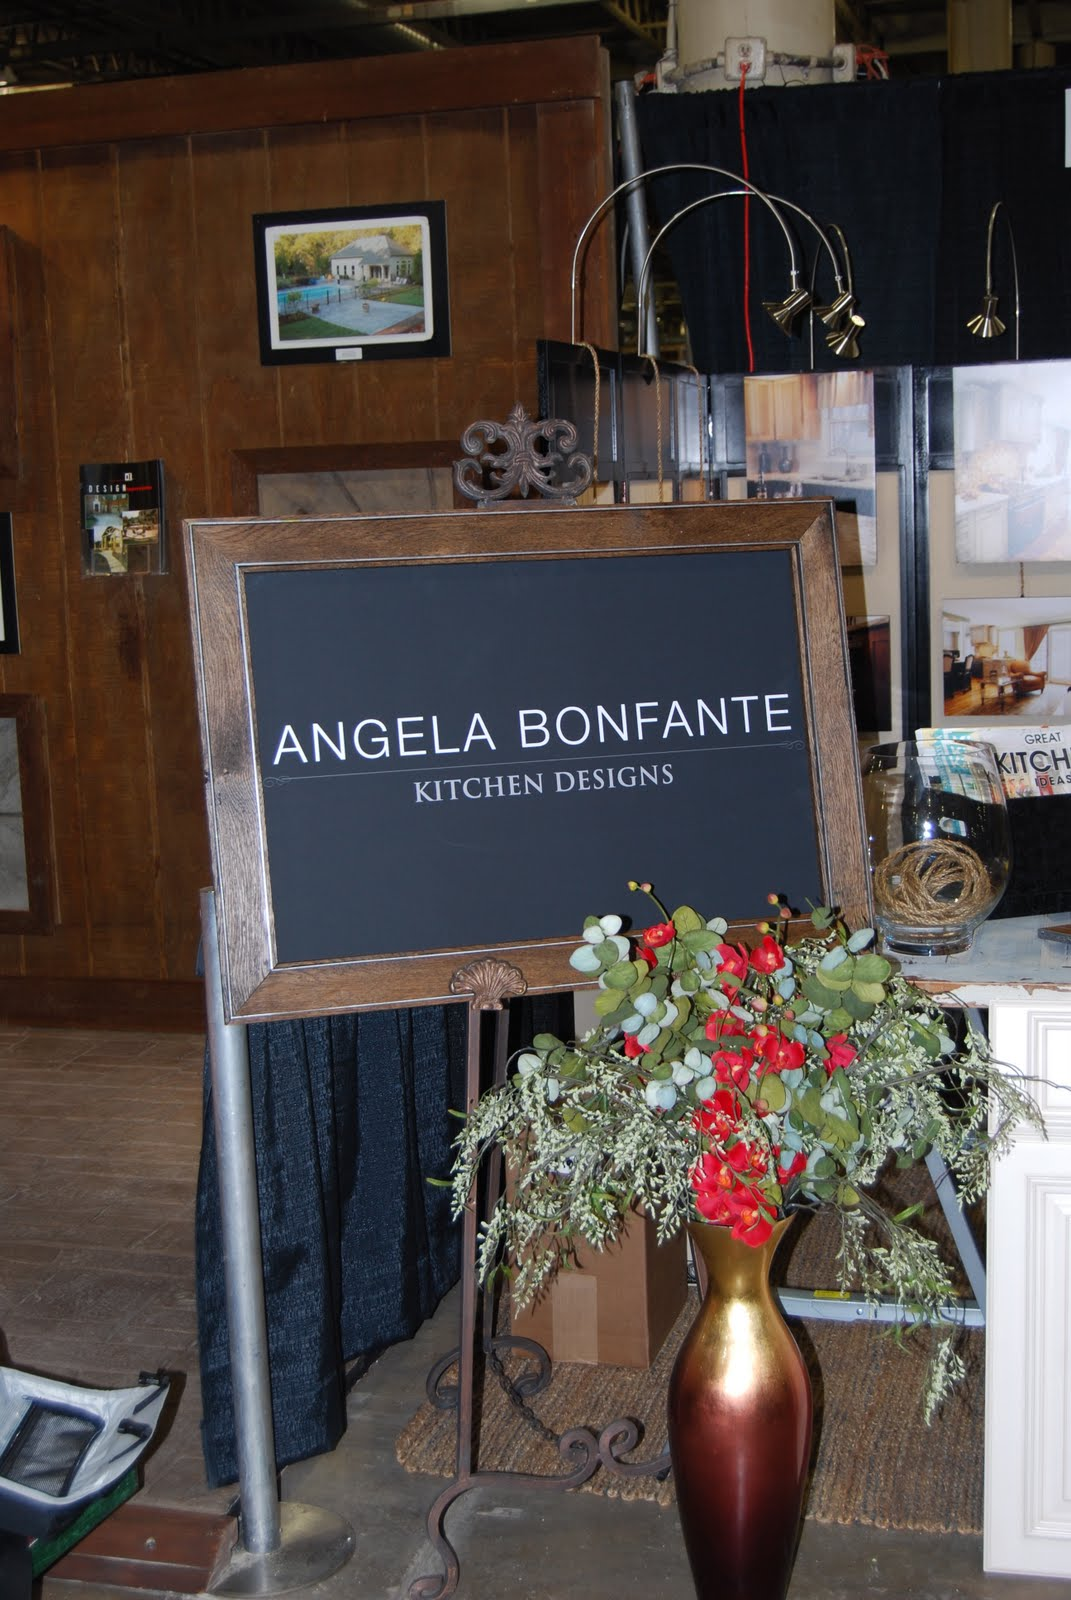 Angela bonfante kitchen designs september 2011 for Angela bonfante kitchen designs